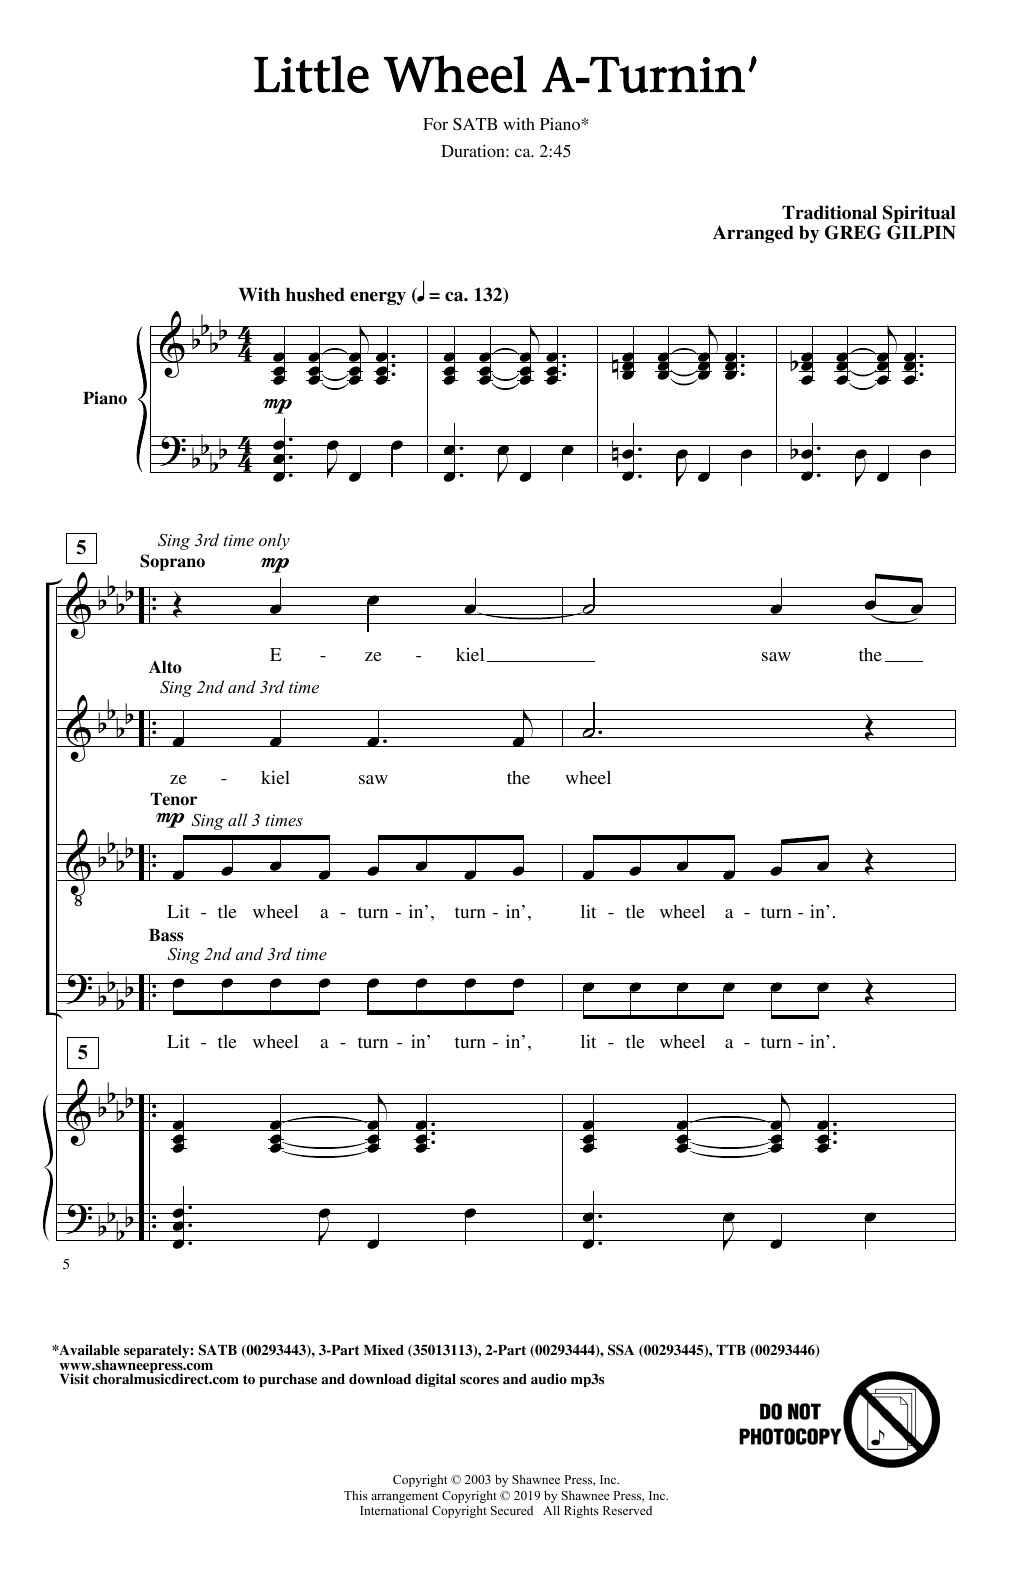 Traditional Spiritual Little Wheel A-Turnin' (arr. Greg Gilpin) sheet music notes and chords. Download Printable PDF.